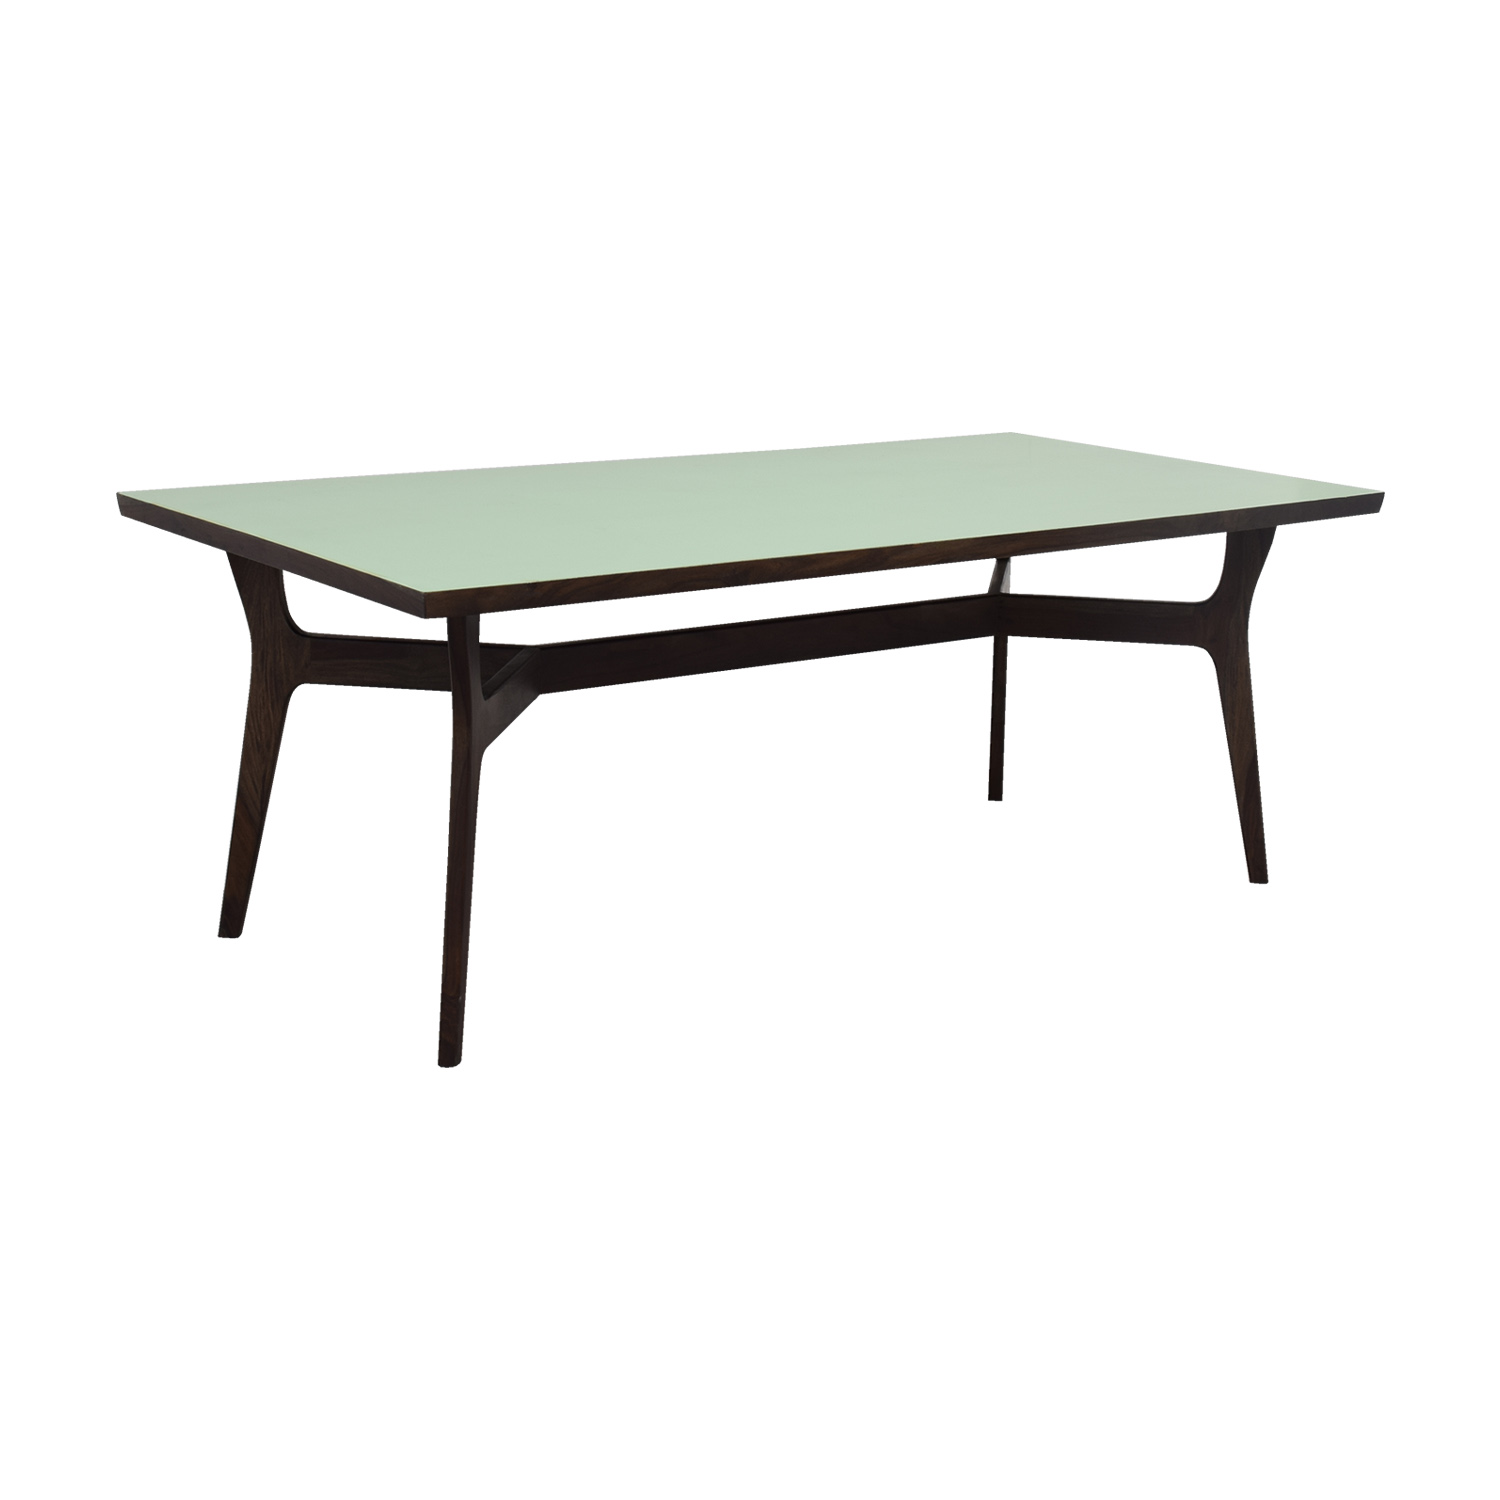 Wood and Teal Dining Table nj